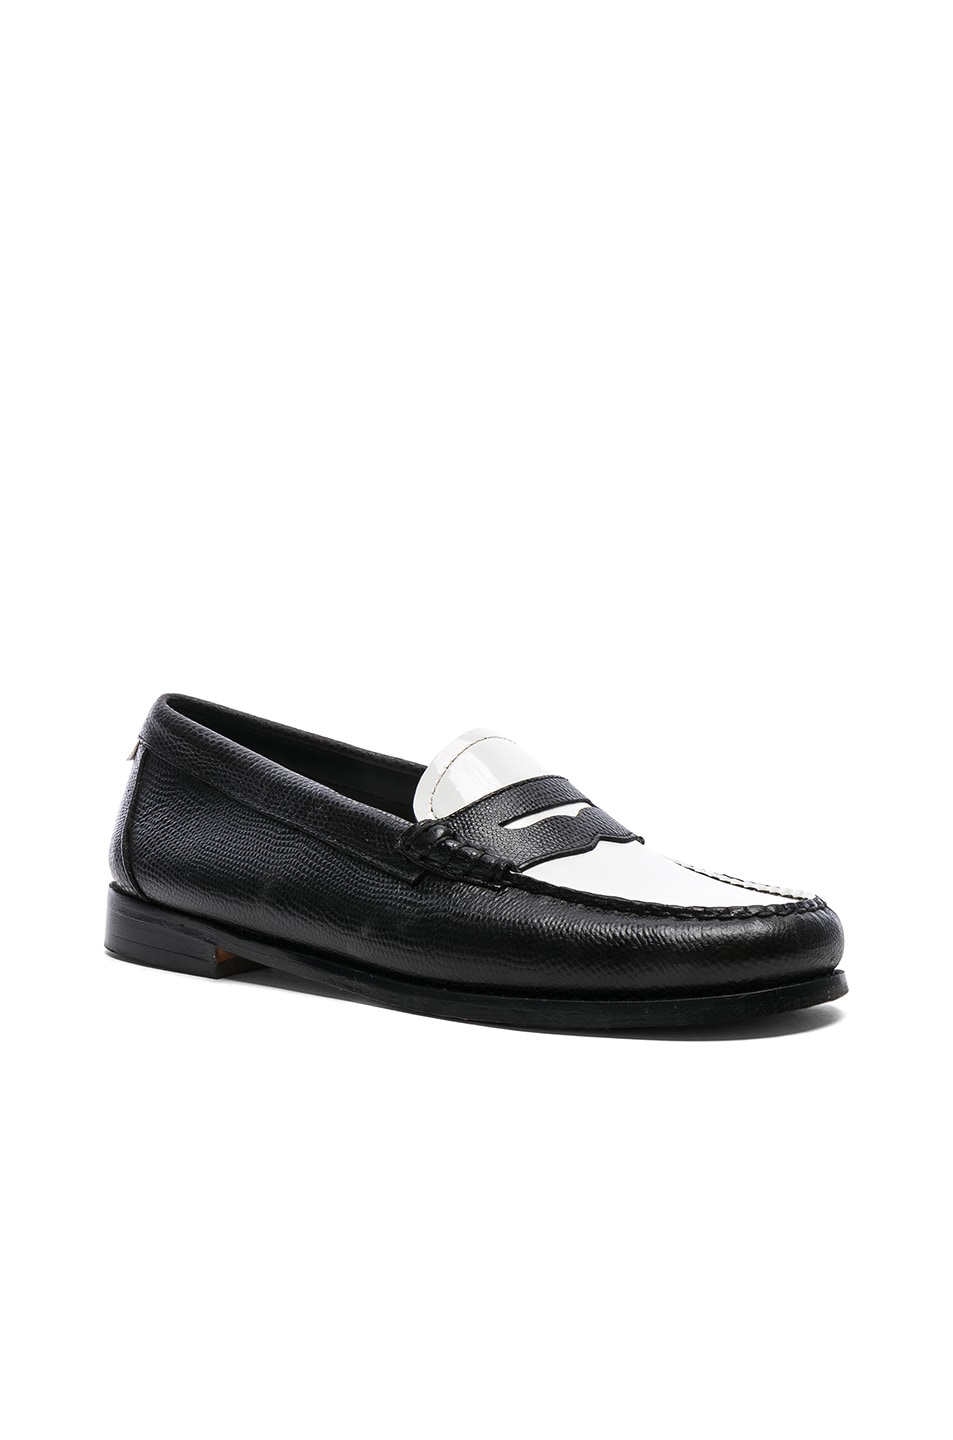 Image 2 of RE/DONE x G.H. Bass & Co. Whitney Loafer in White Patent Plug and Black Lizard Emboss